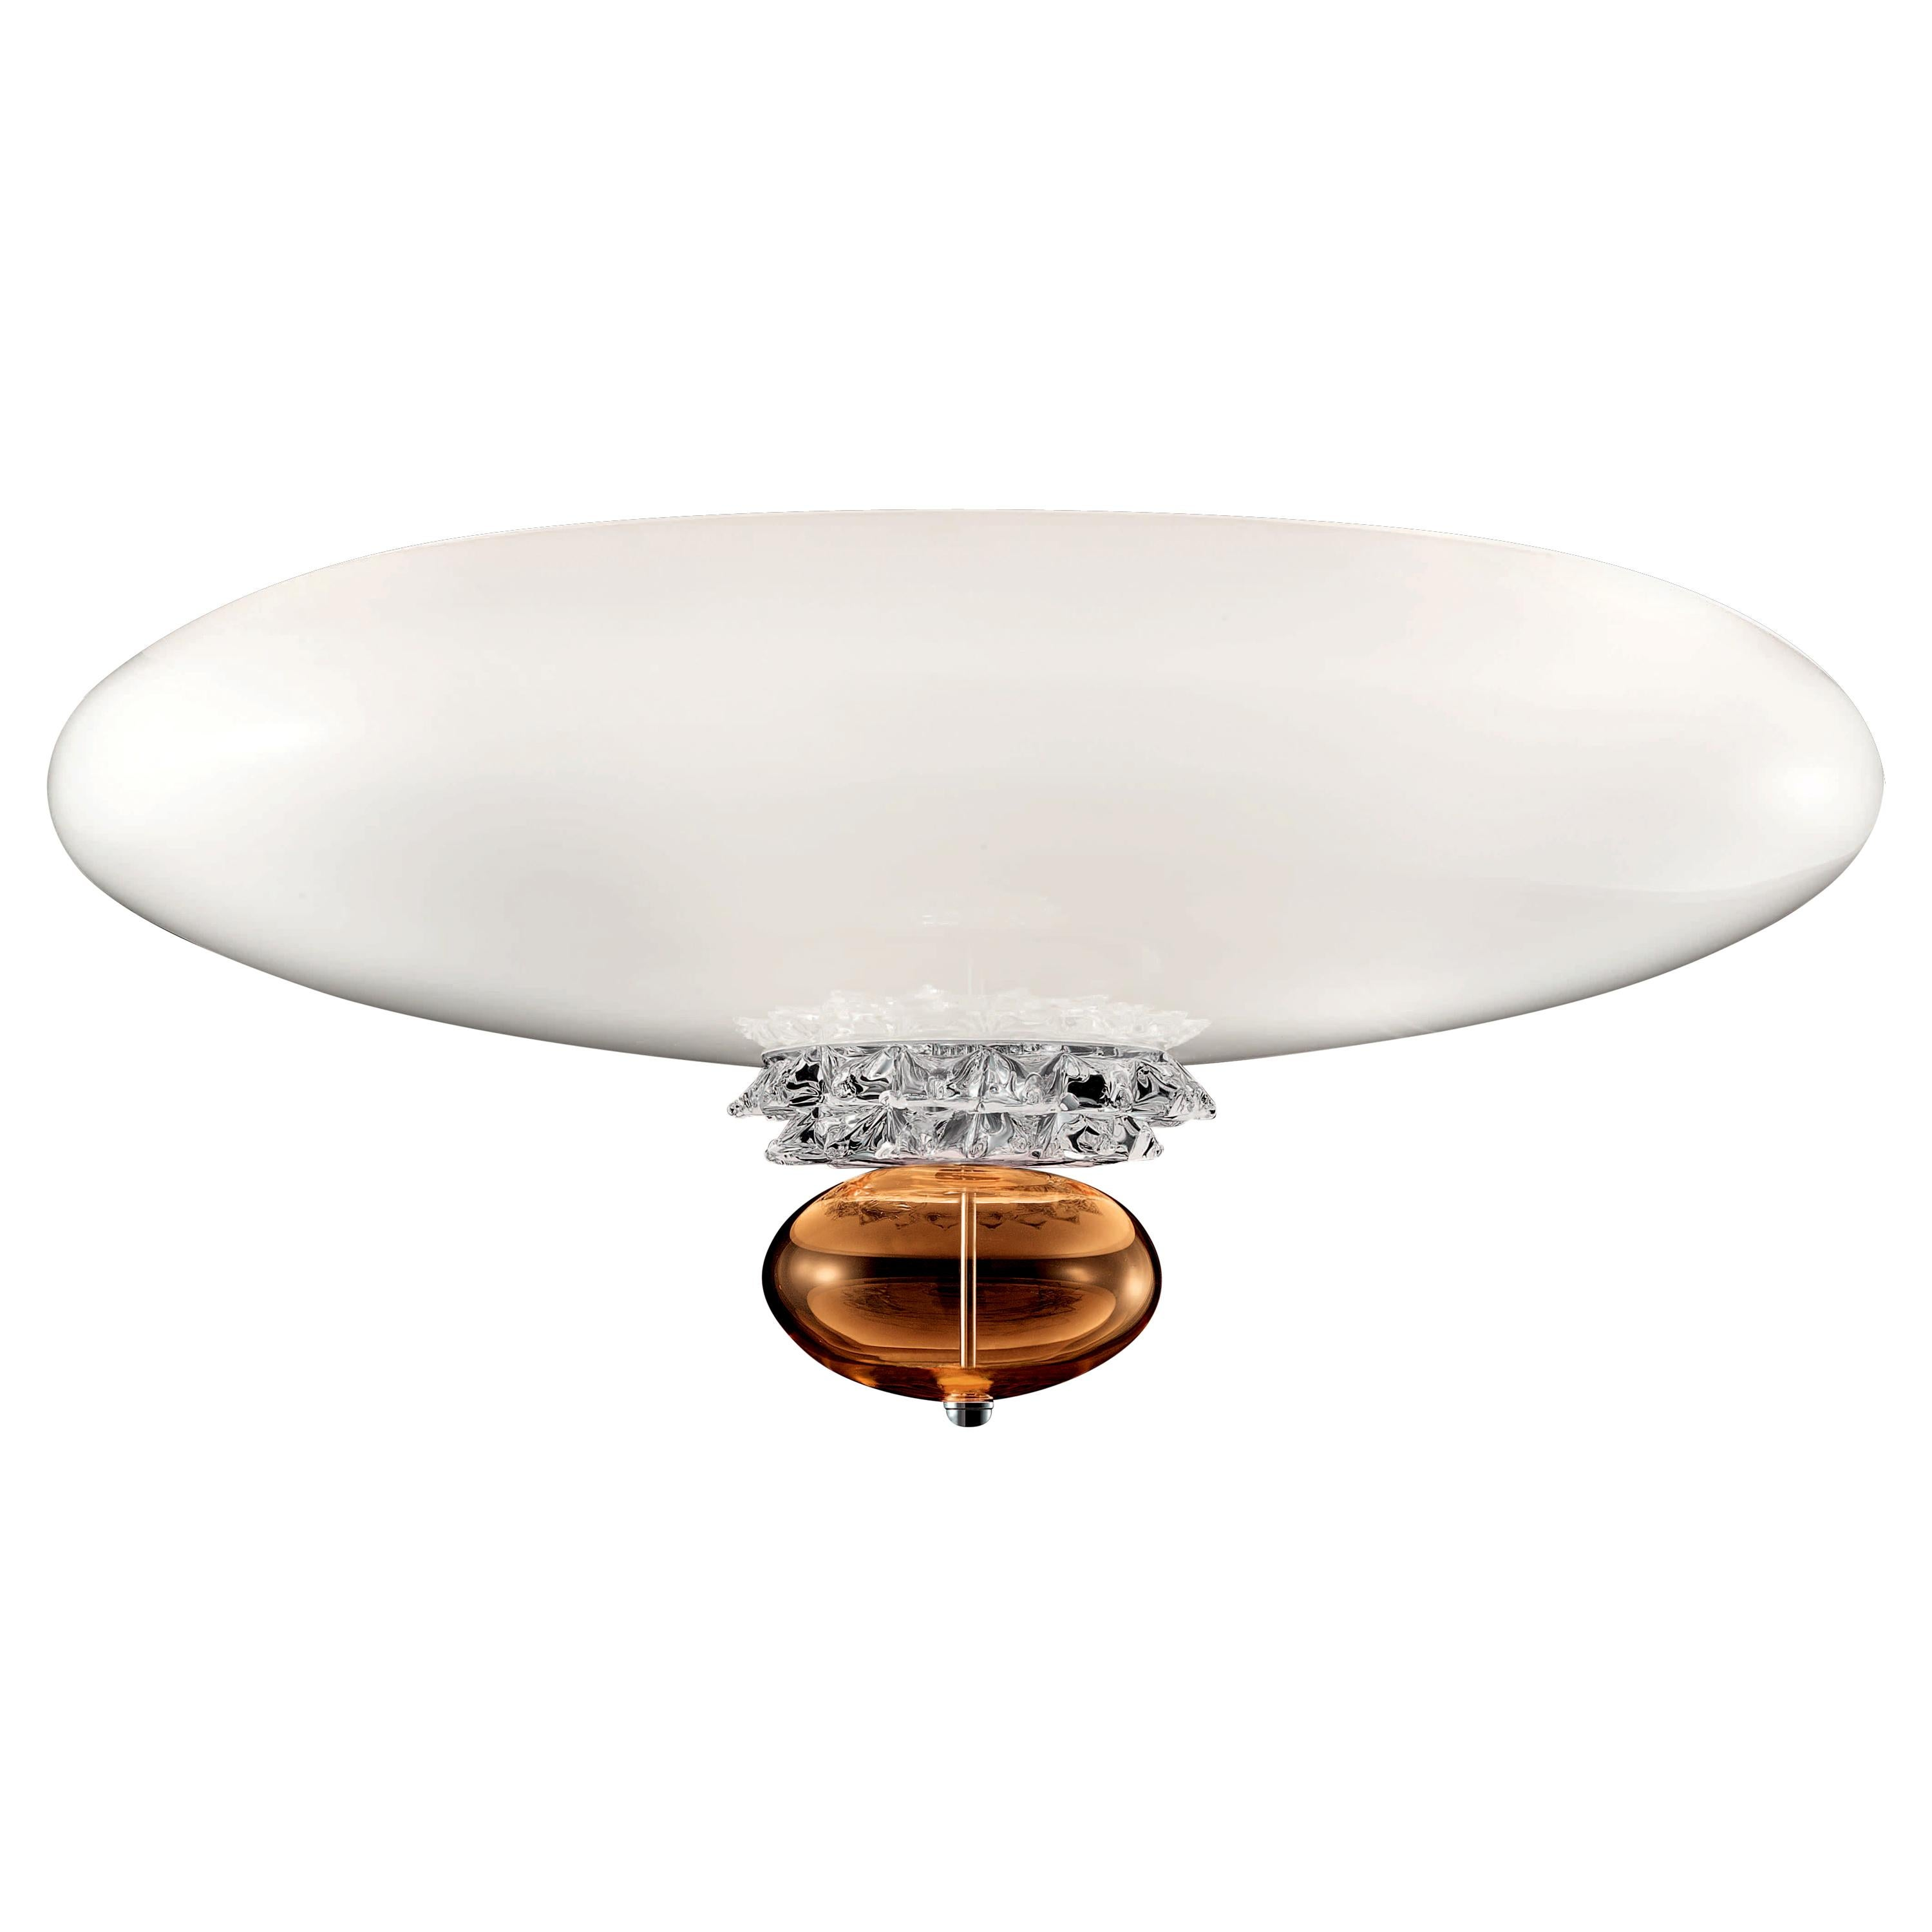 Anversa 5698 Ceiling Lamp in Chrome and Glass, by Barovier&Toso